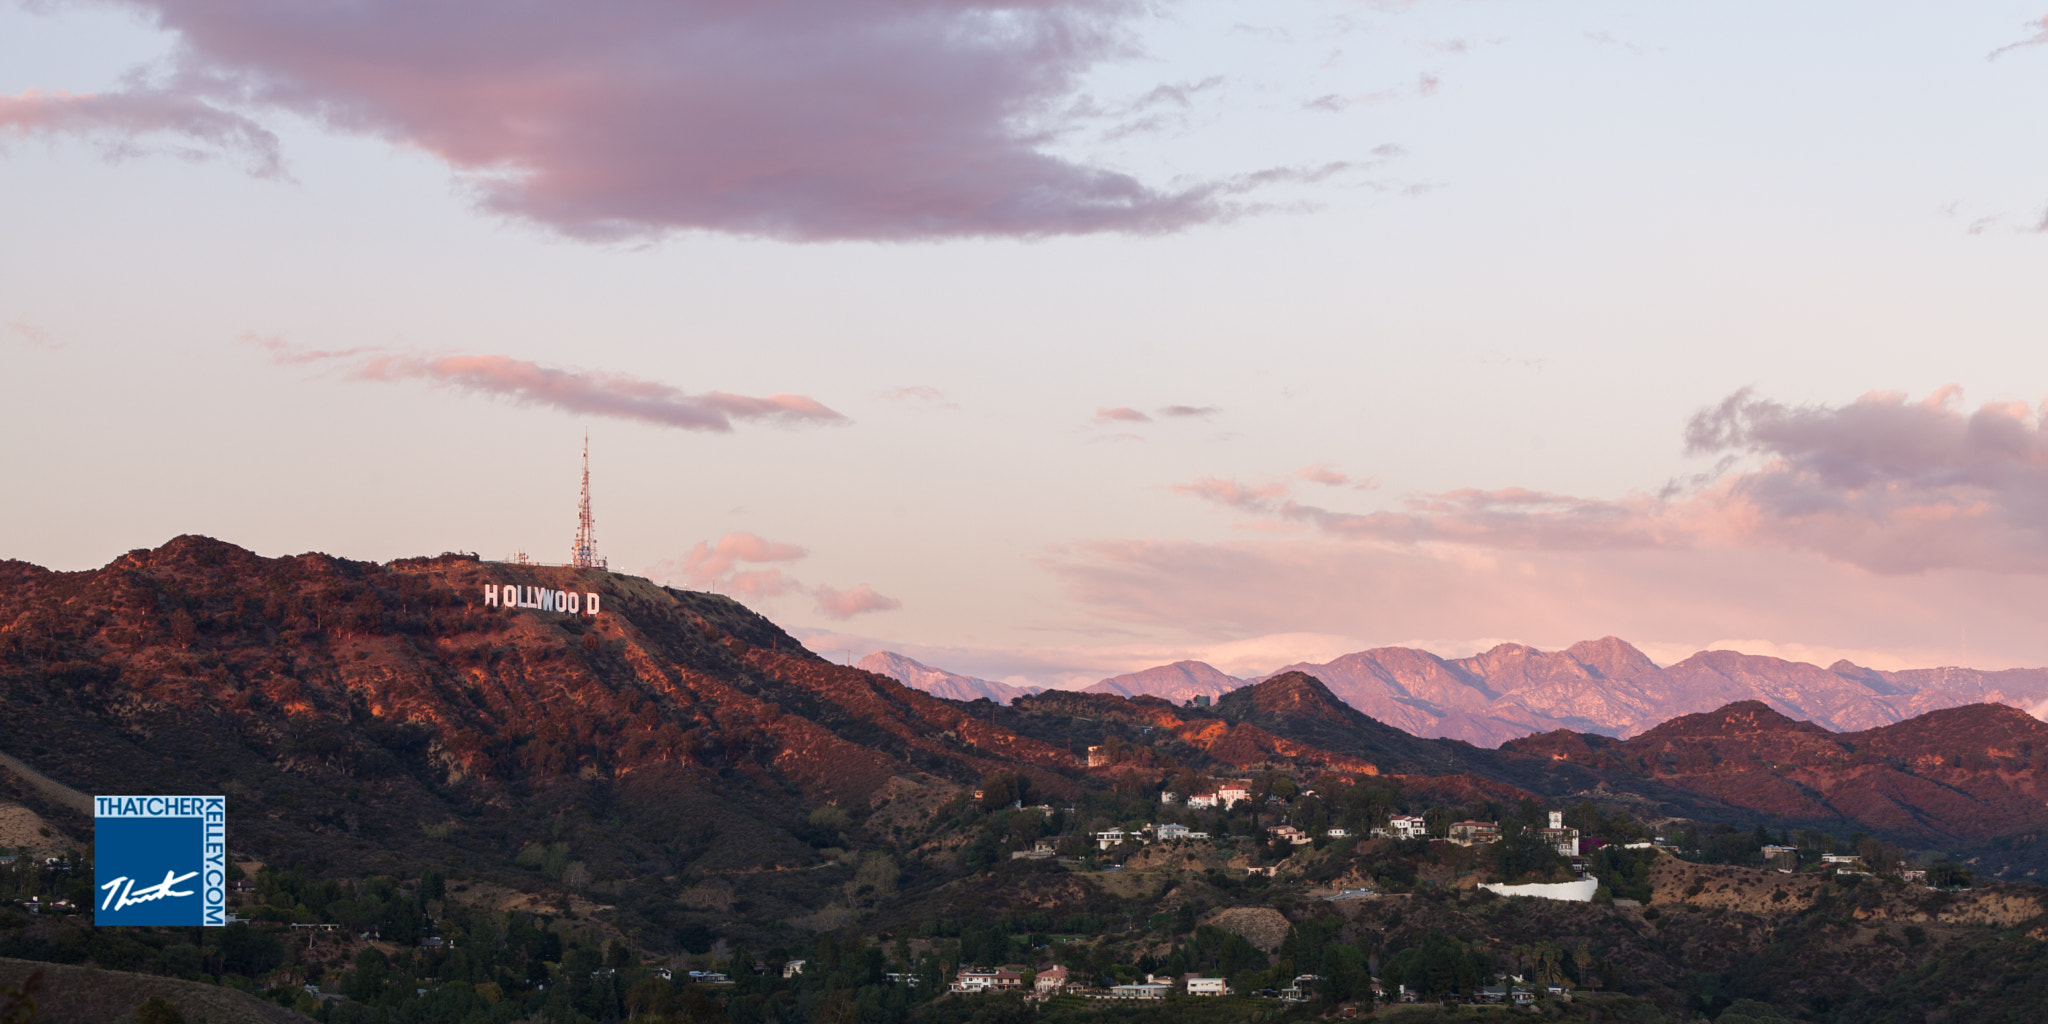 Photograph Hollywood at Sunset by Thatcher Kelley on 500px